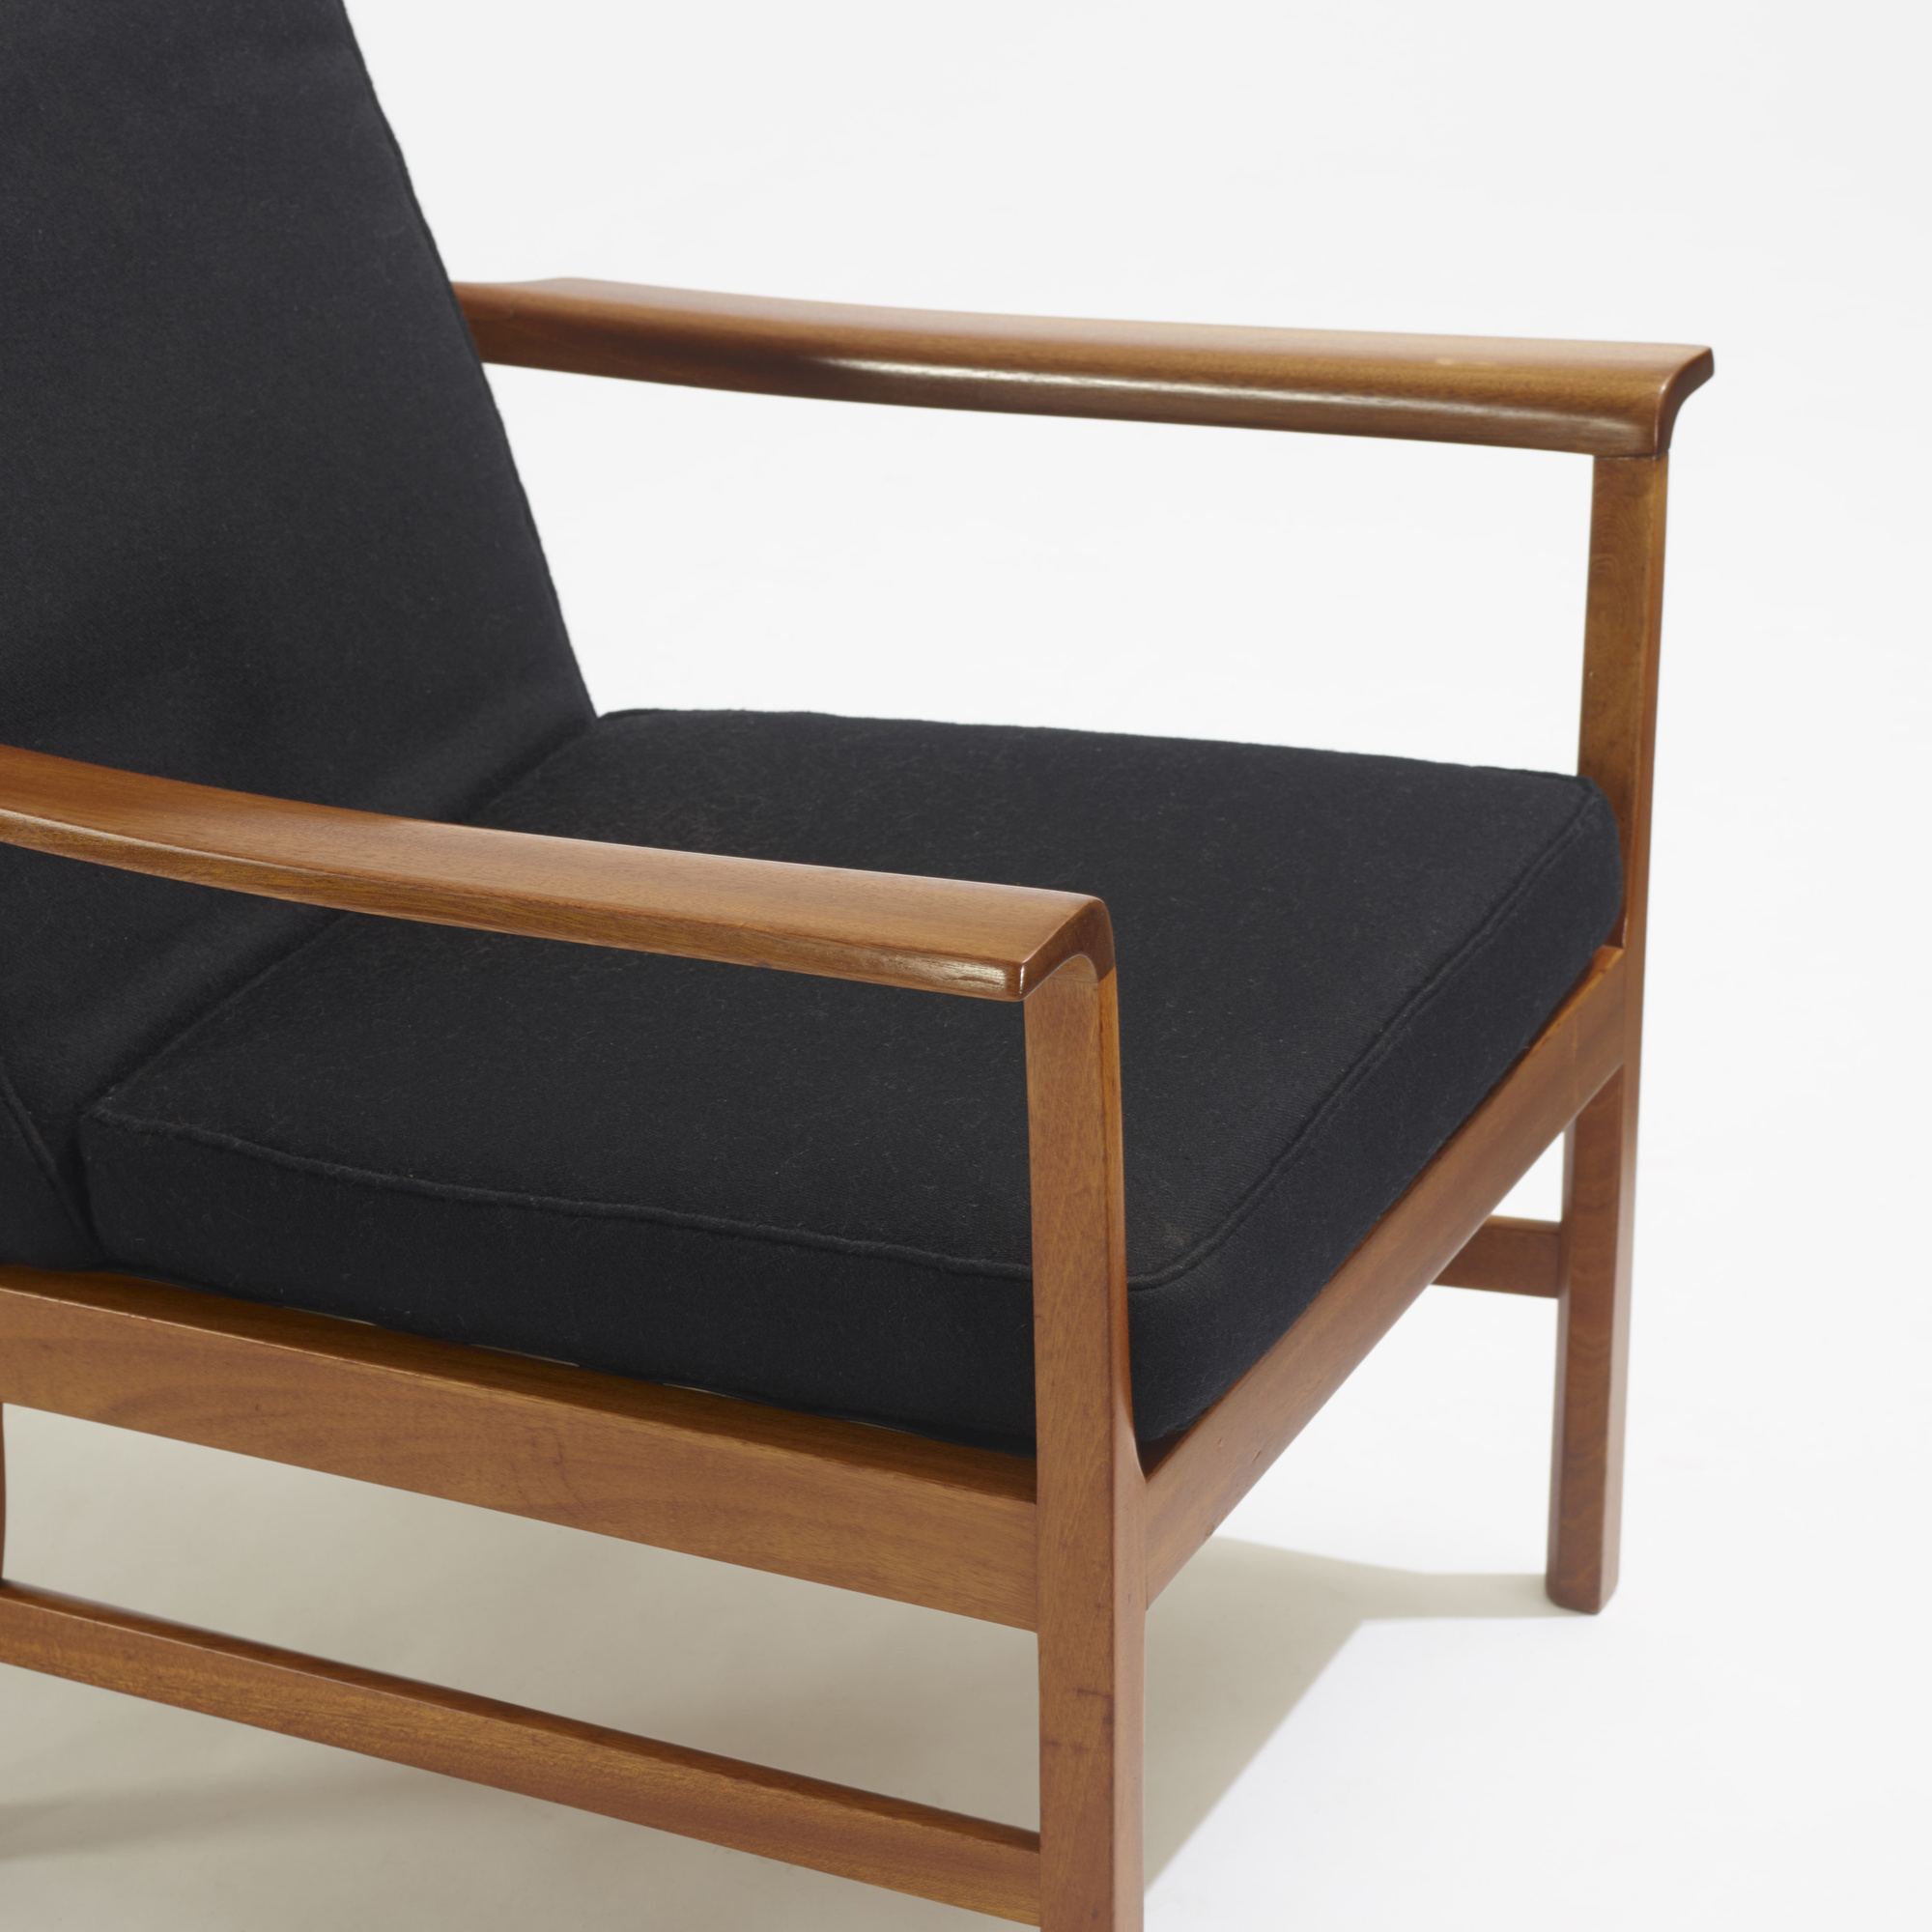 290 ole wanscher lounge chairs model a 3021 pair